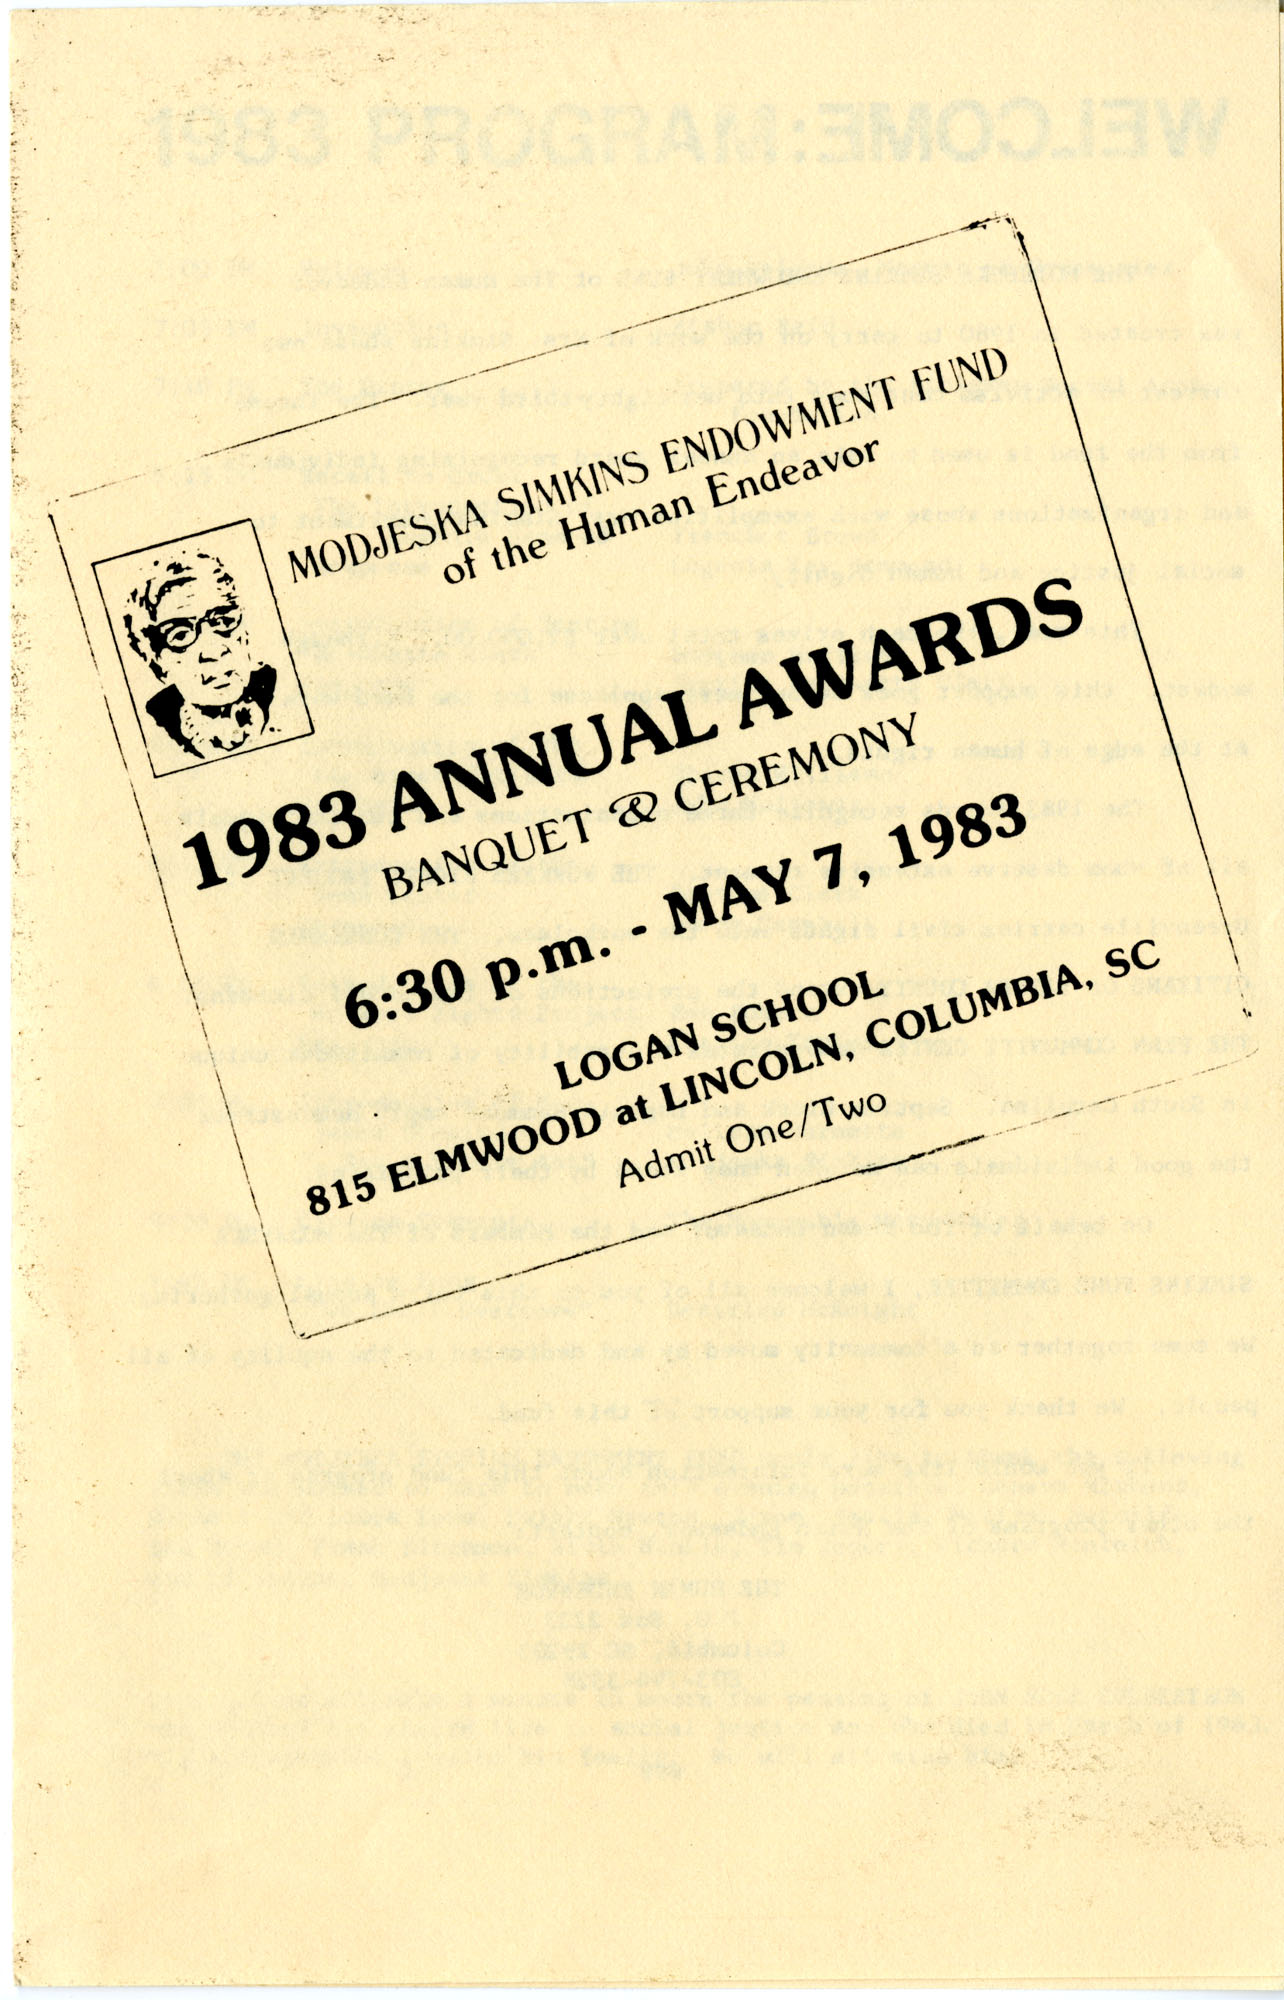 Award Ceremony Program, May 7, 1983